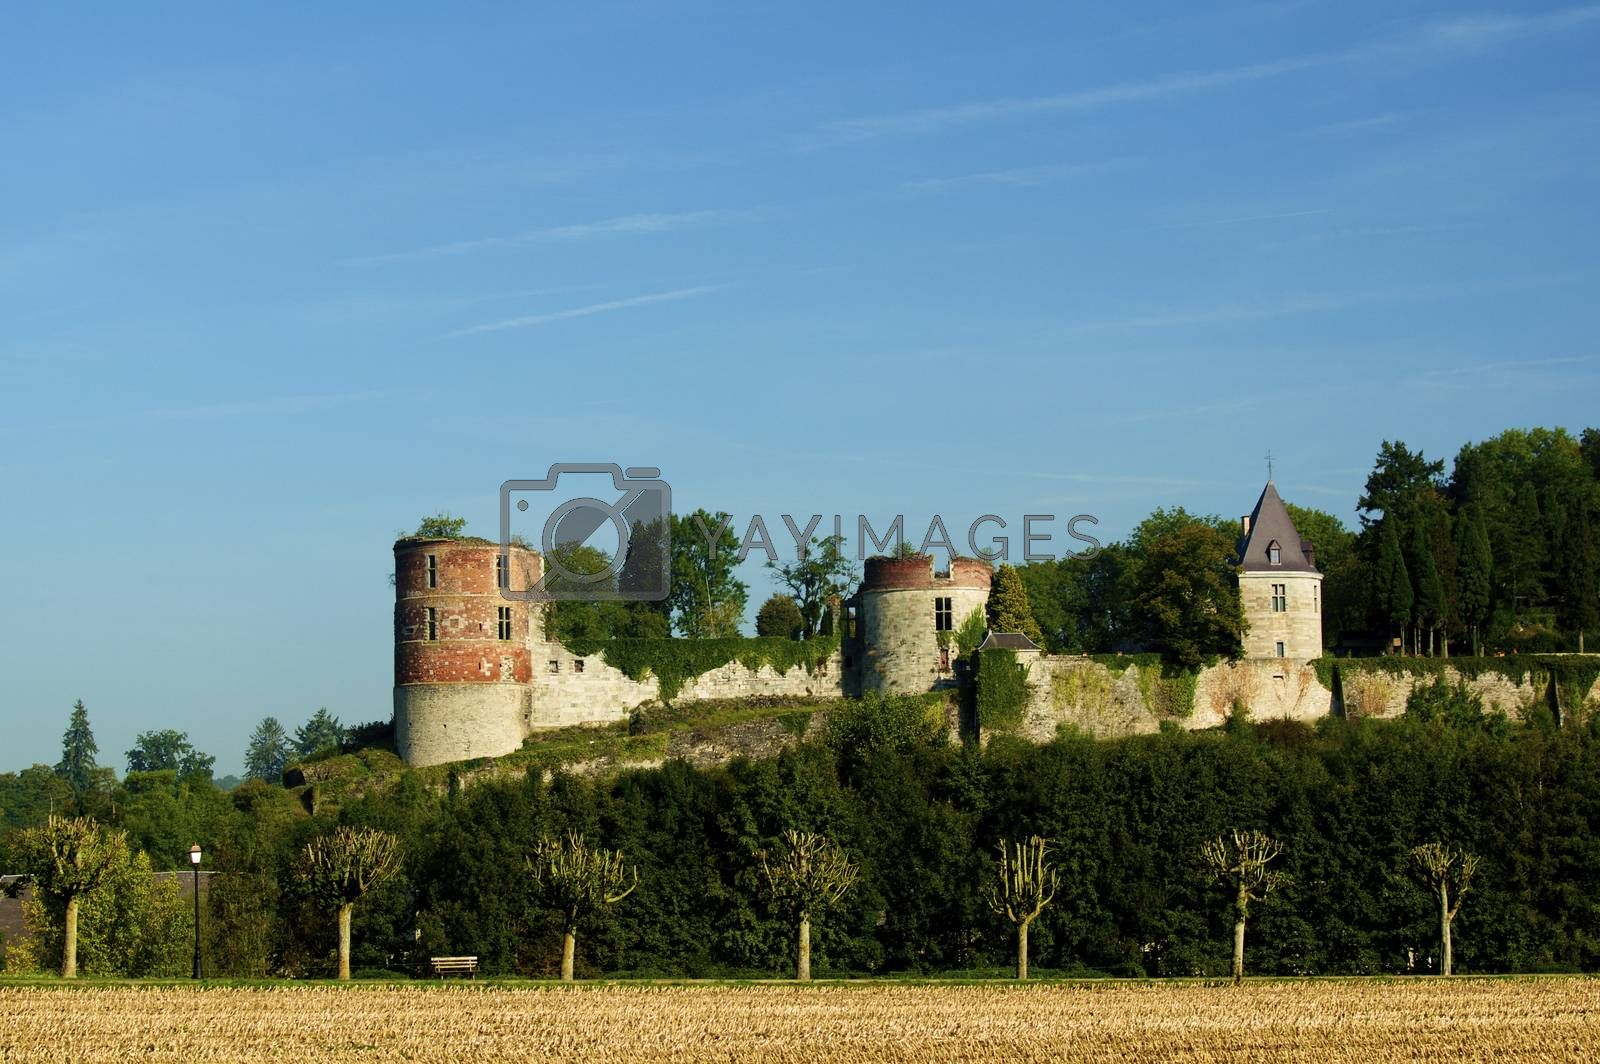 Castle of Hierges - Château de Hierges - with Tree Alley on Blue Sky background Outdoors. Ardennes region of France